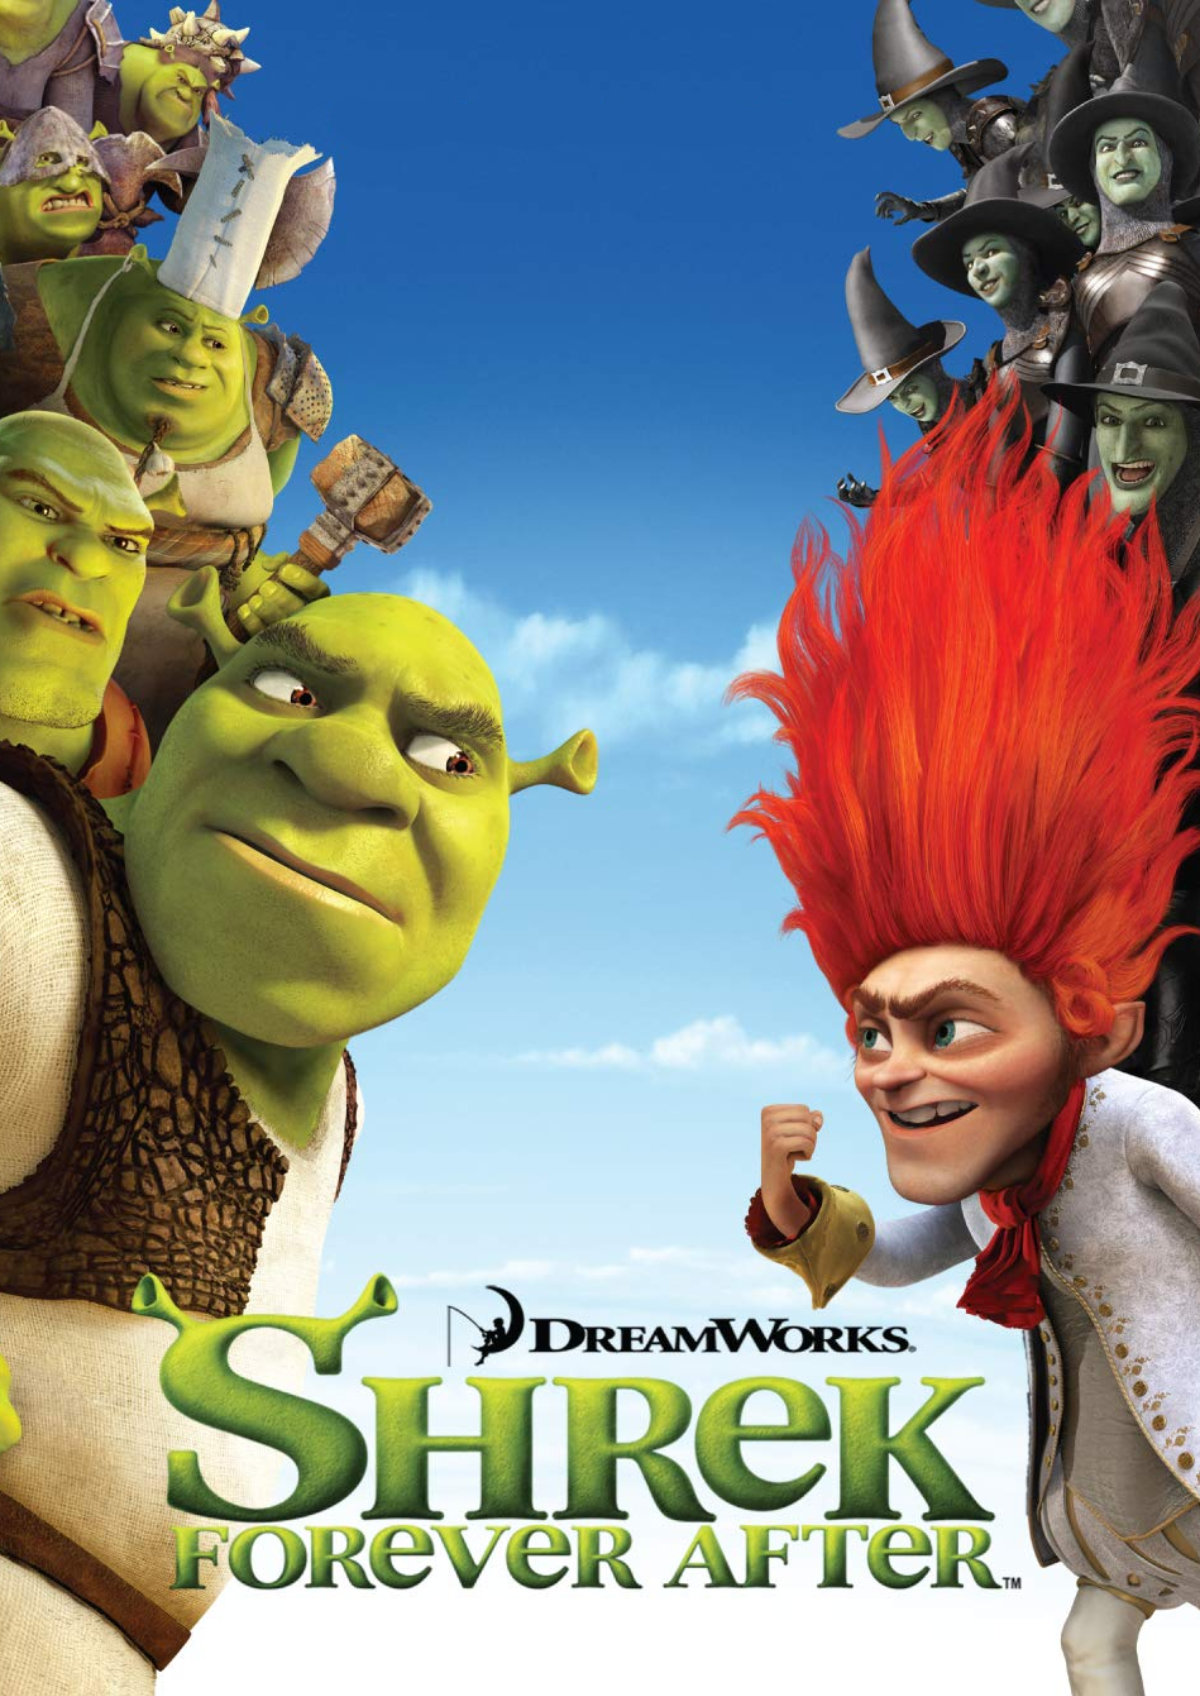 'Shrek Forever After' movie poster